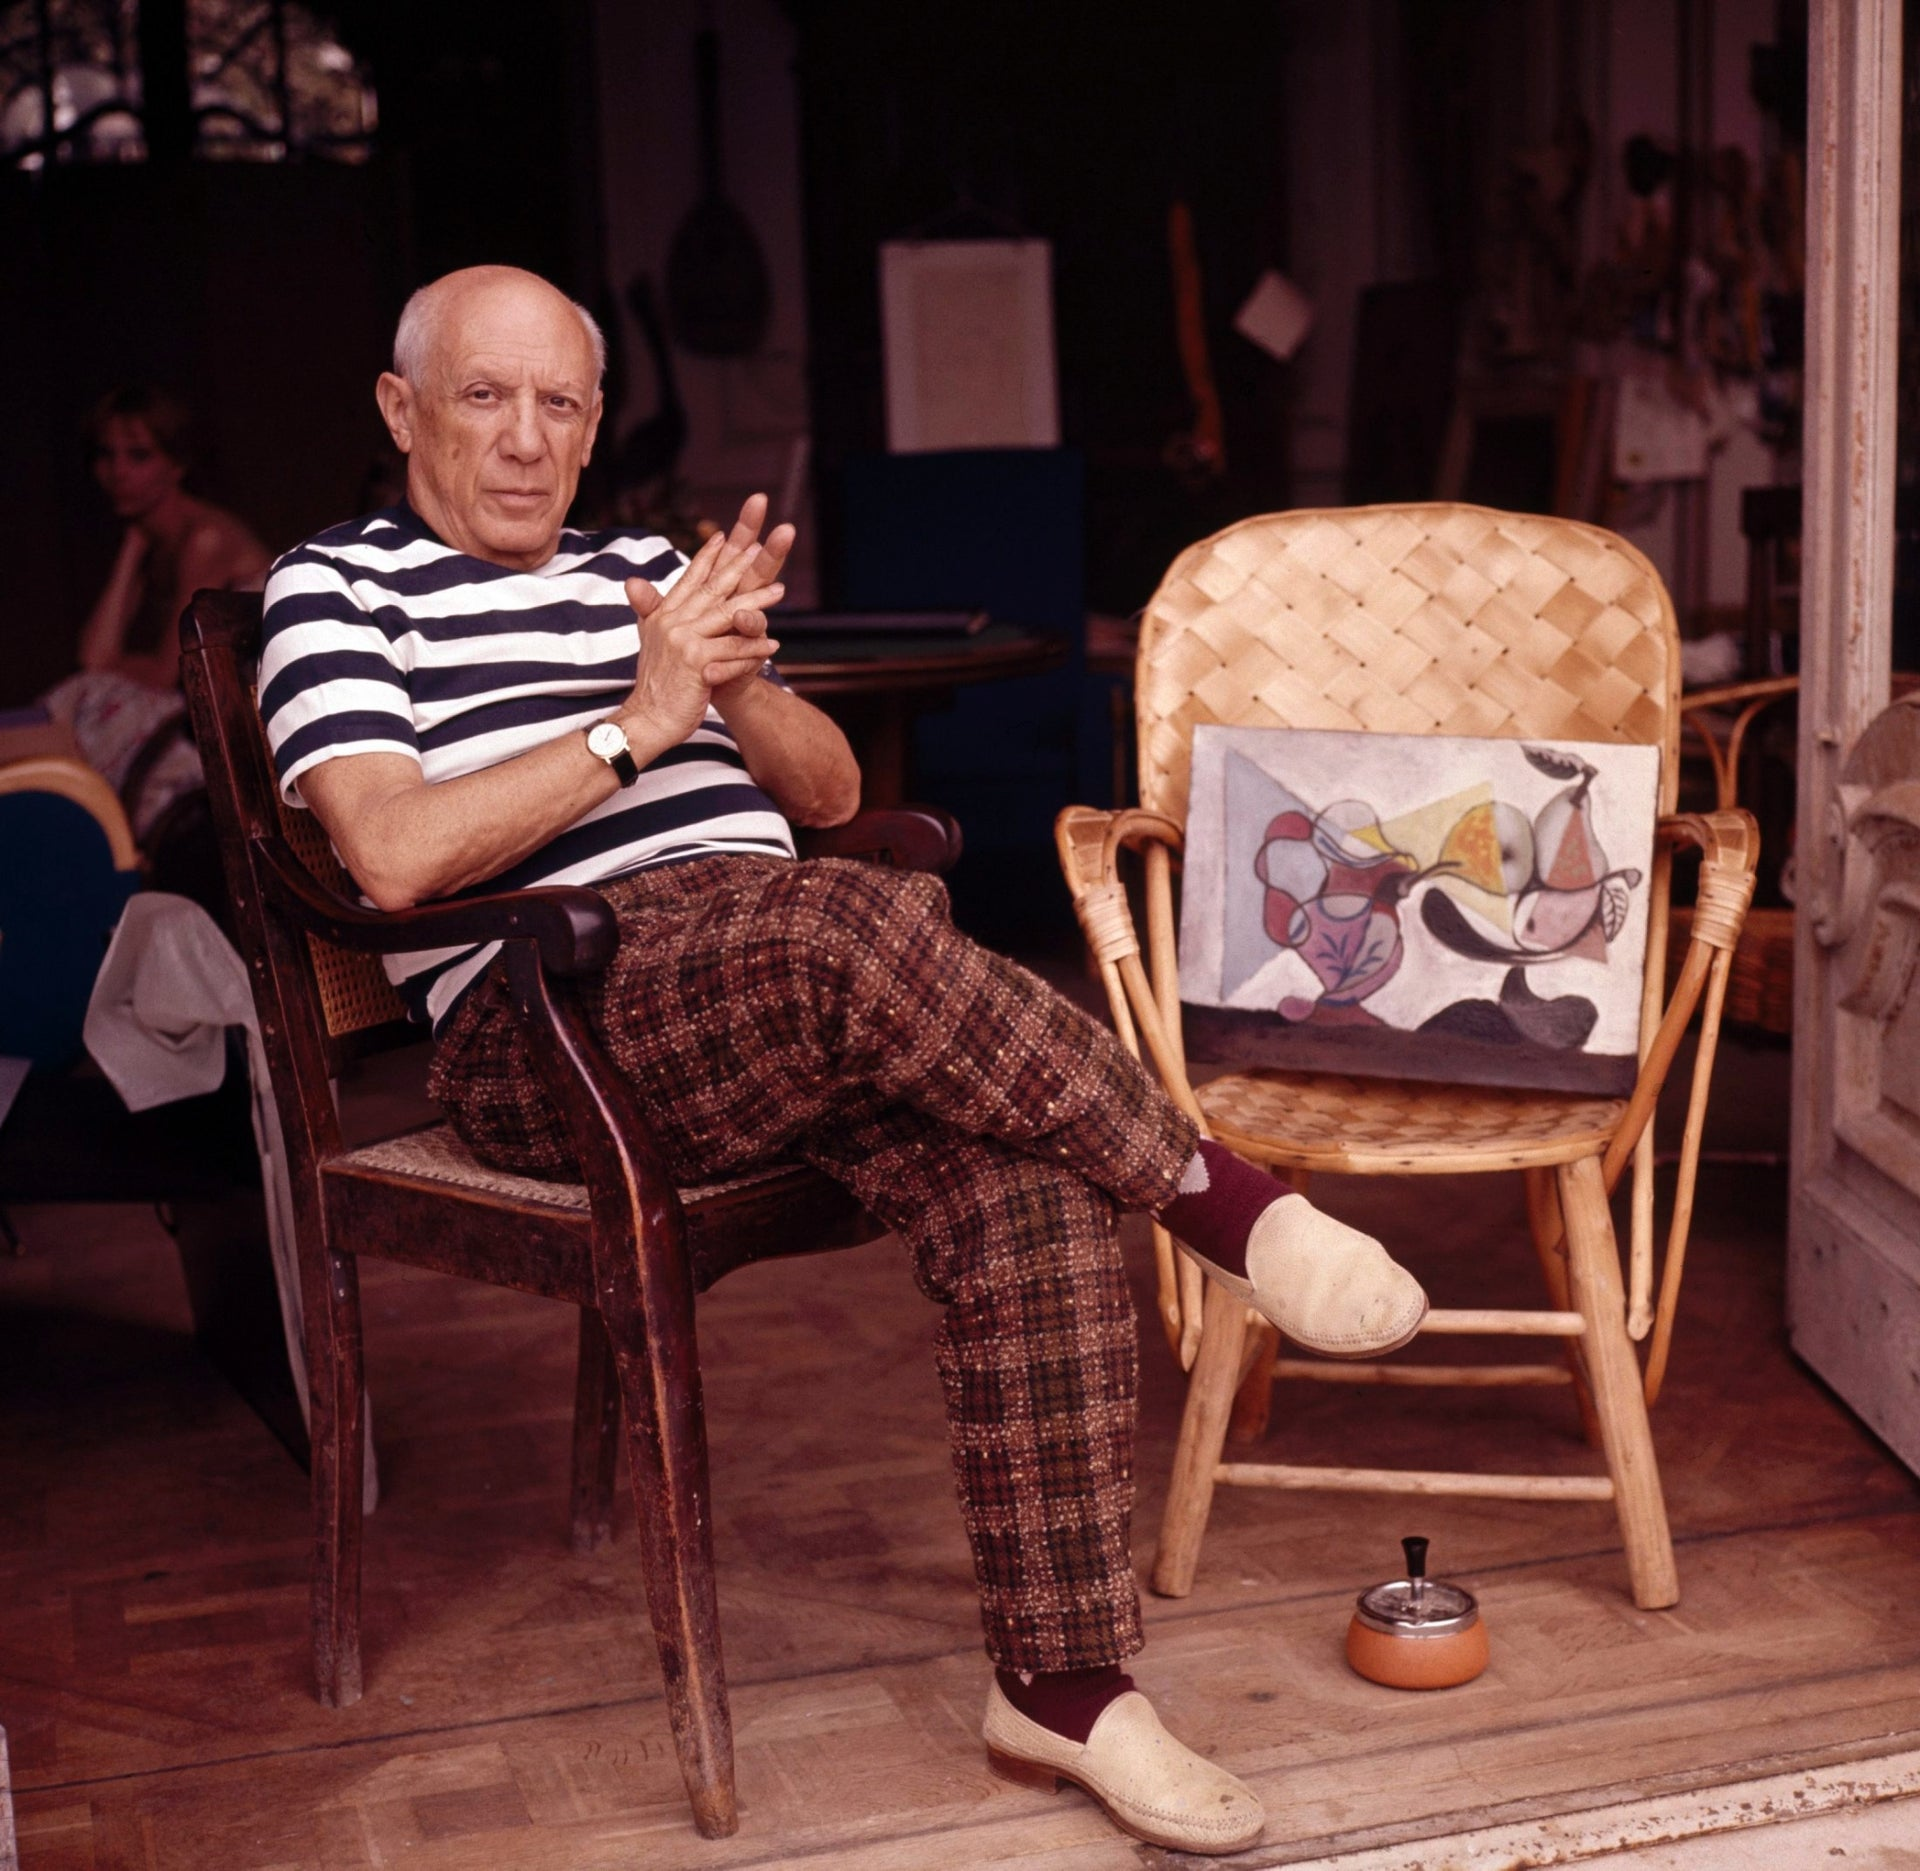 Pablo Picasso at his home in Cannes, circa 1960.